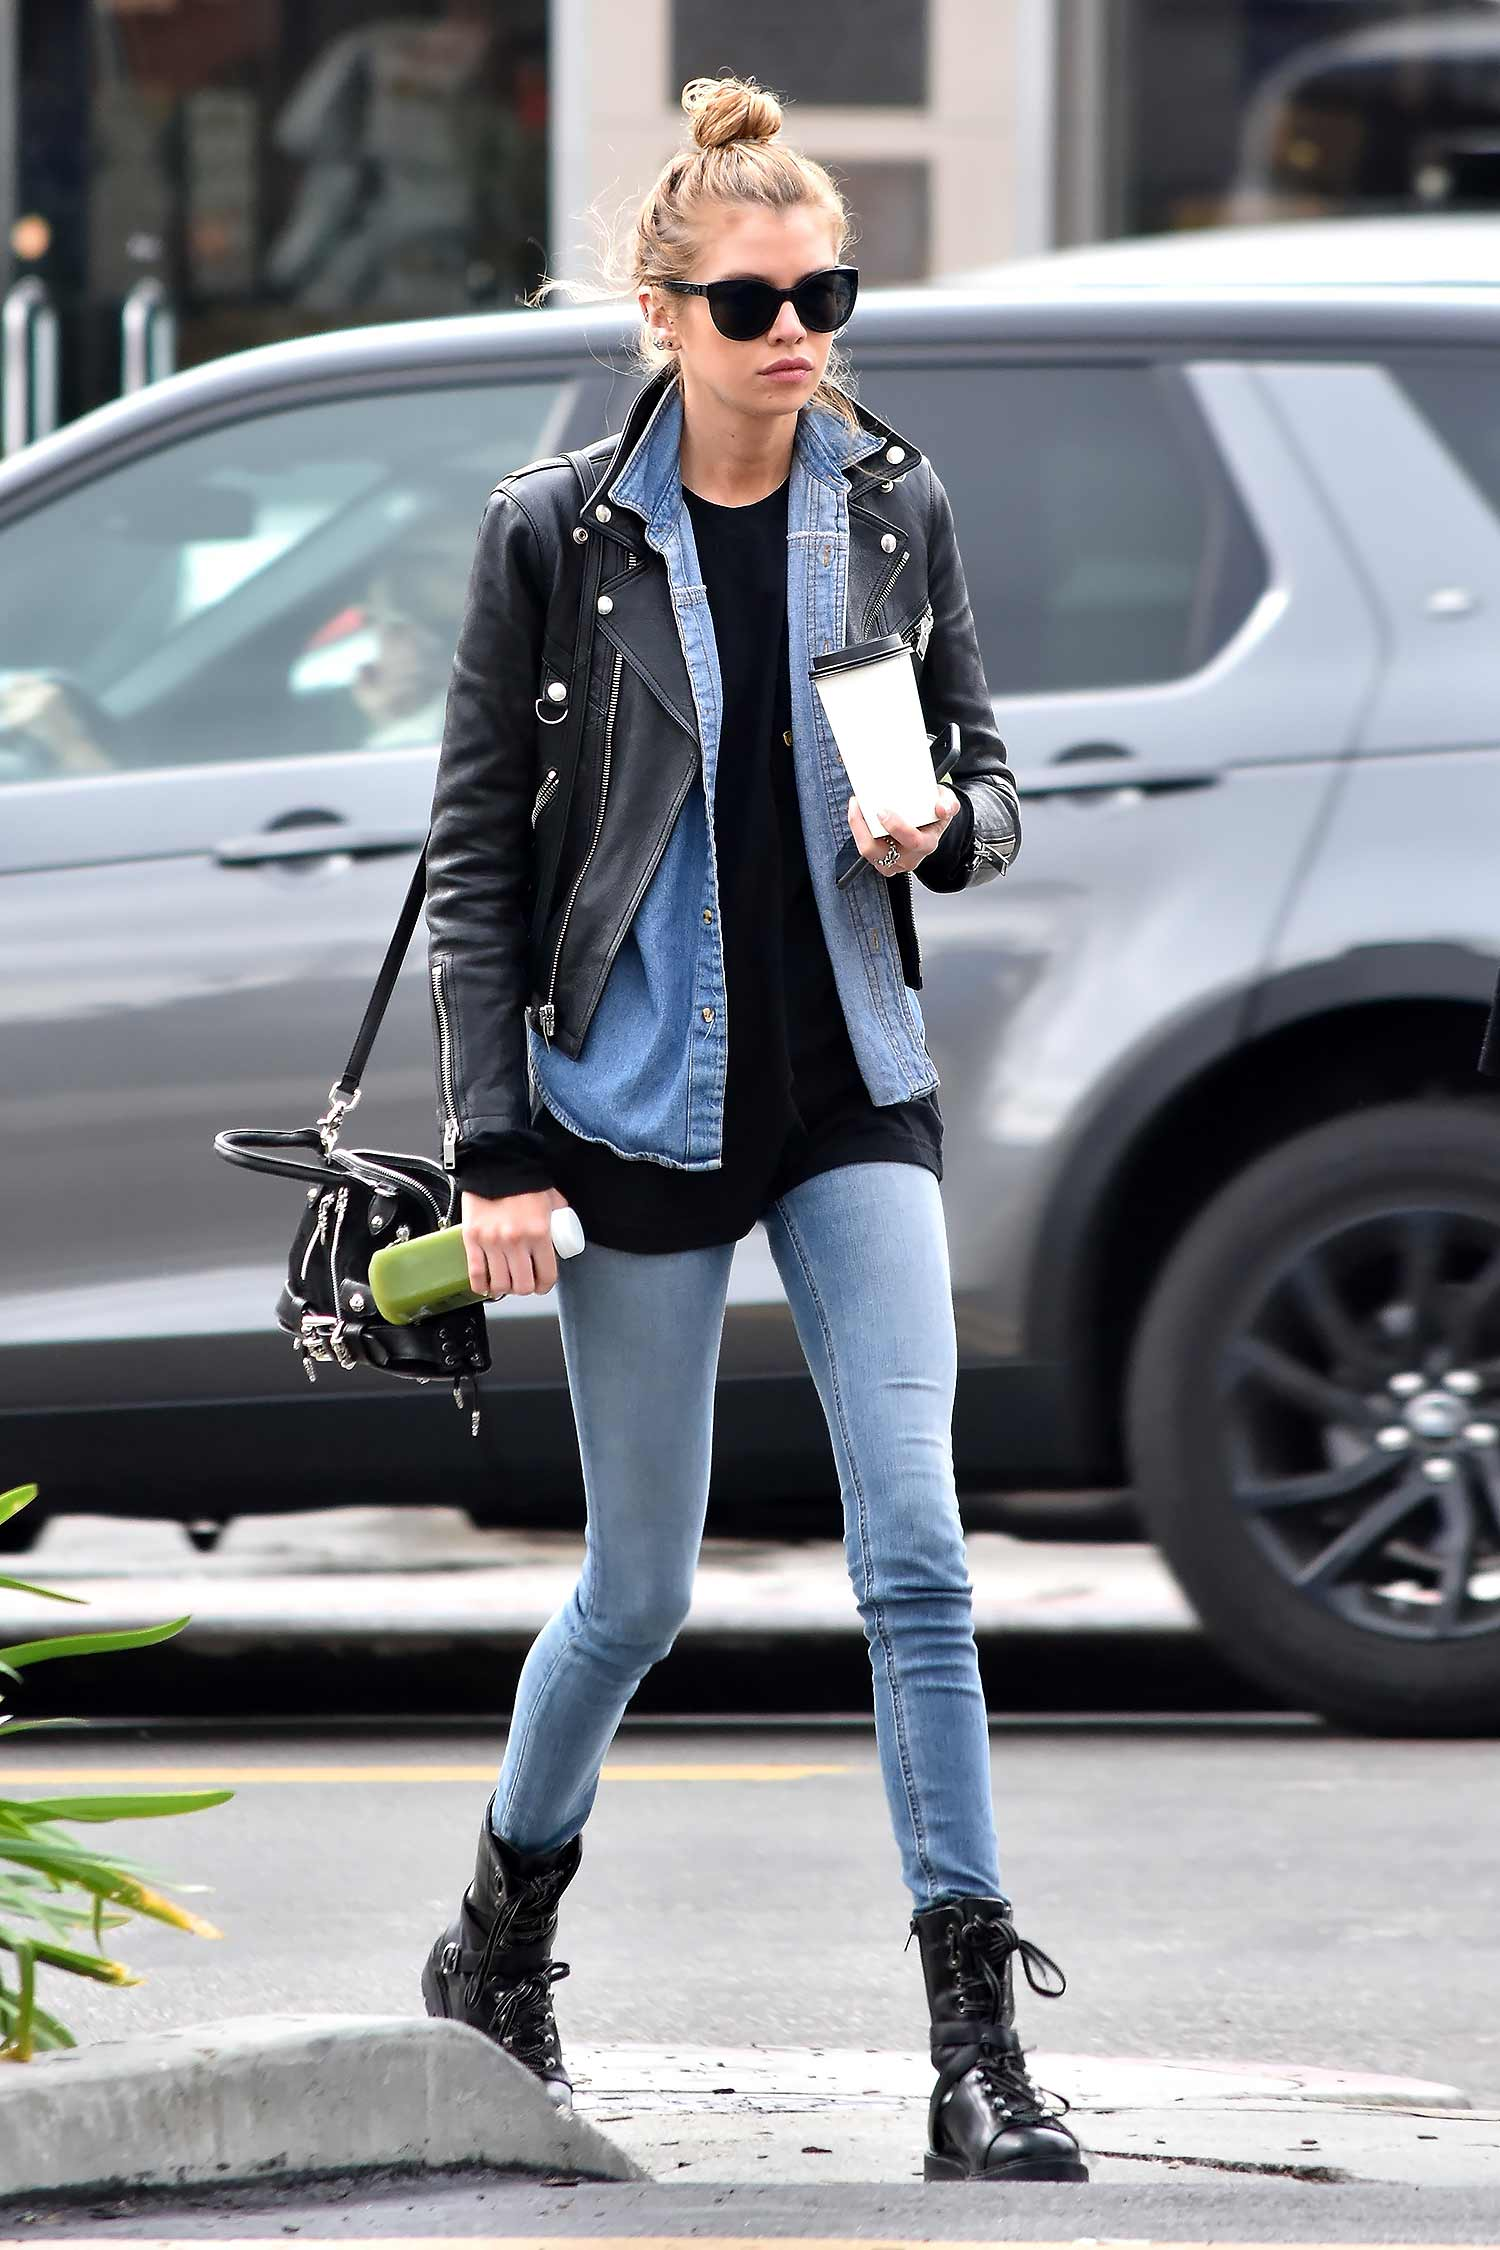 stella-maxwell-double-denim-shirt-leather-jacket